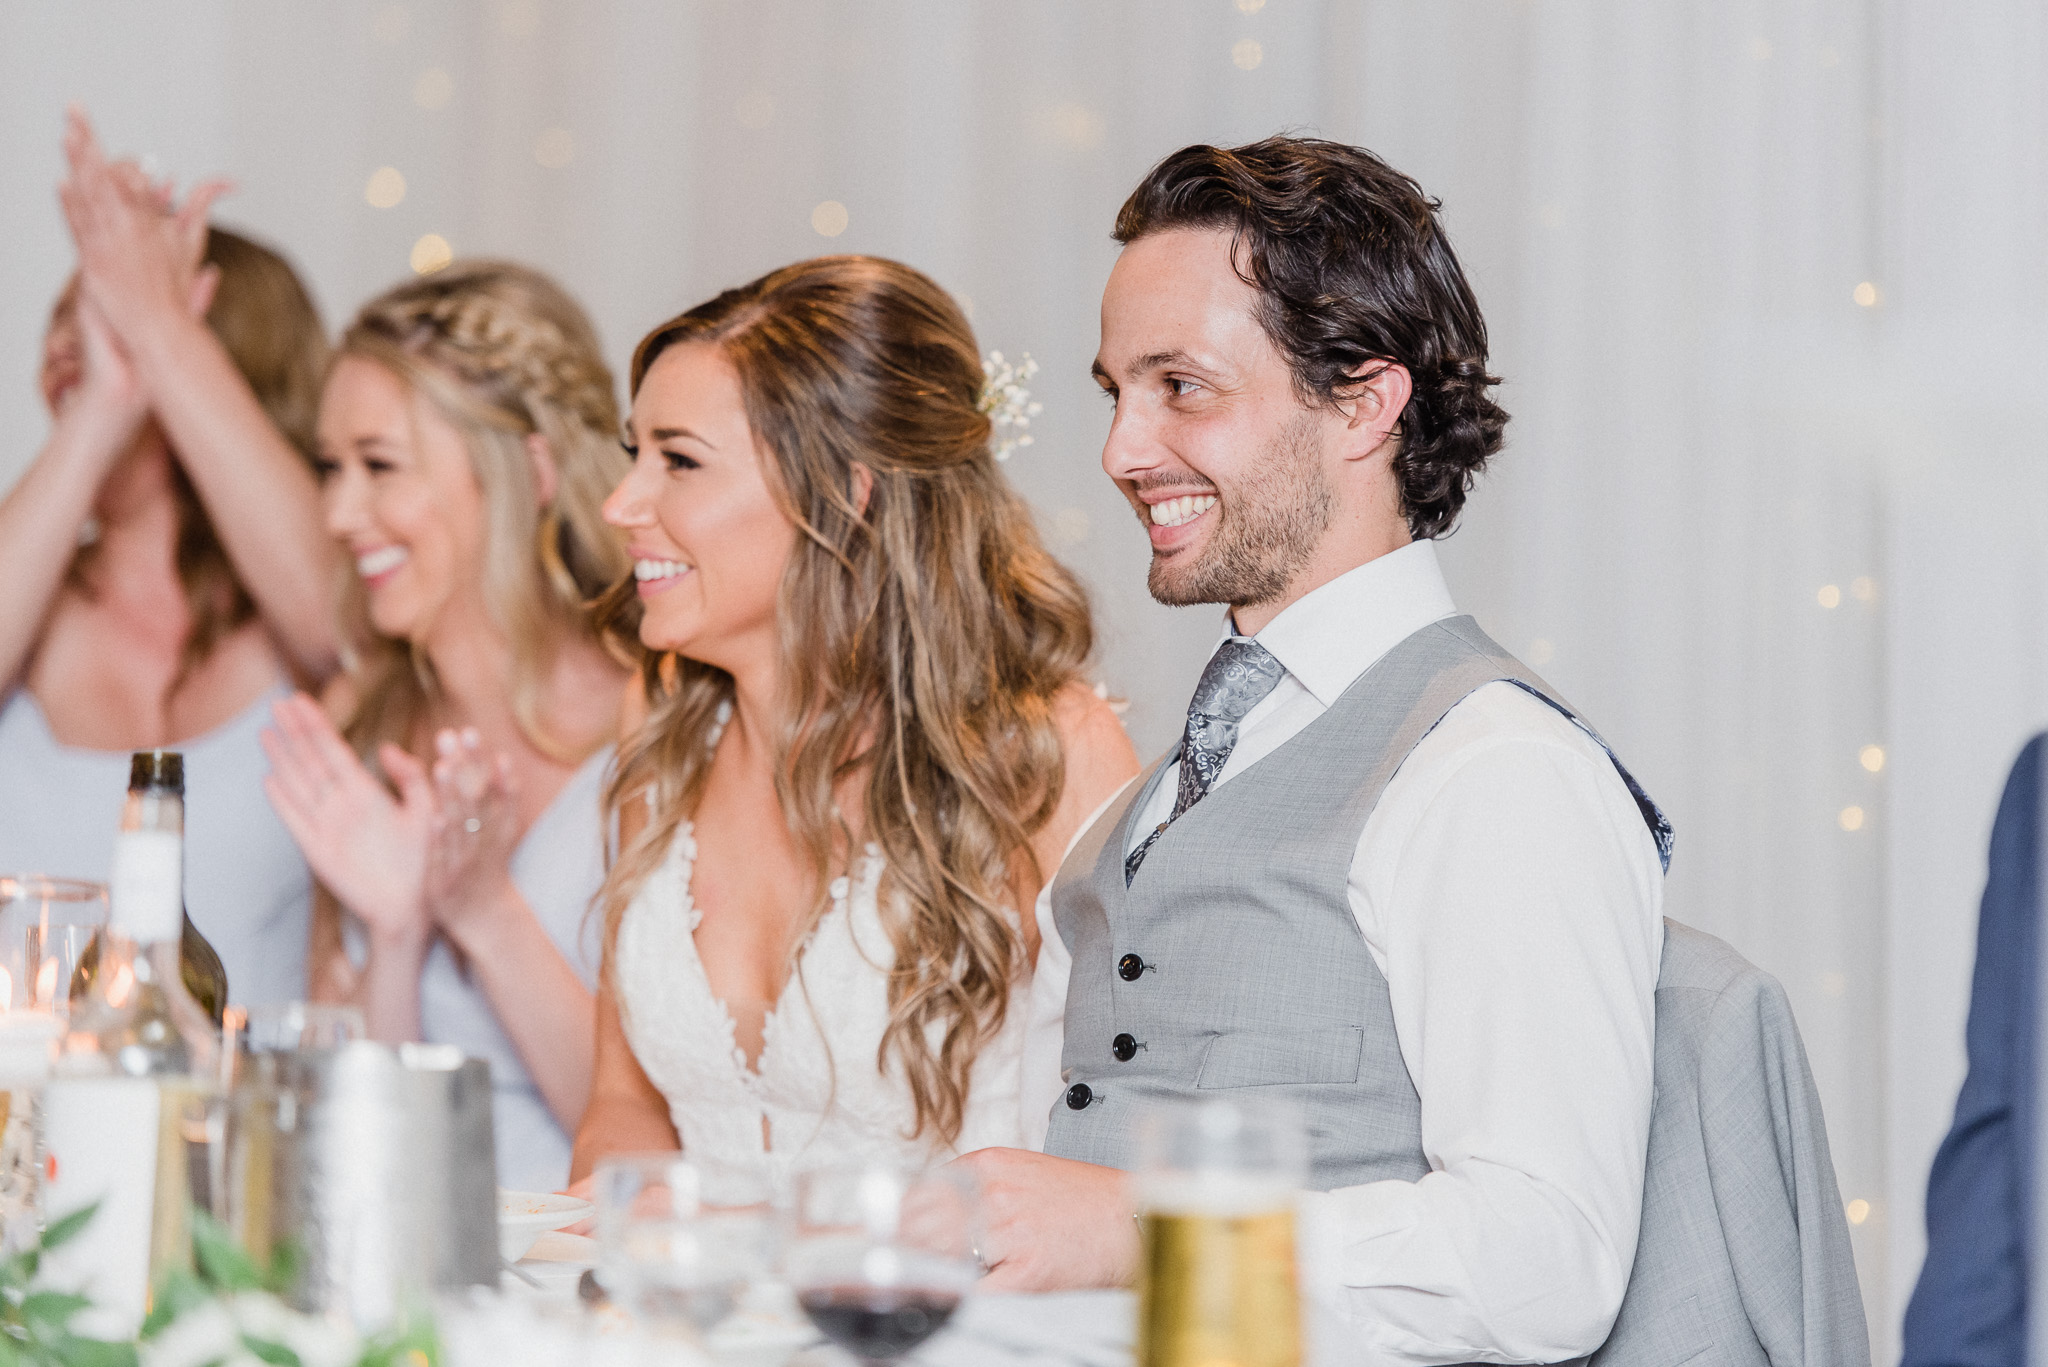 LaSalle Banquet Centre Pavilion Wedding Photos | Jenn Kavanagh Photography